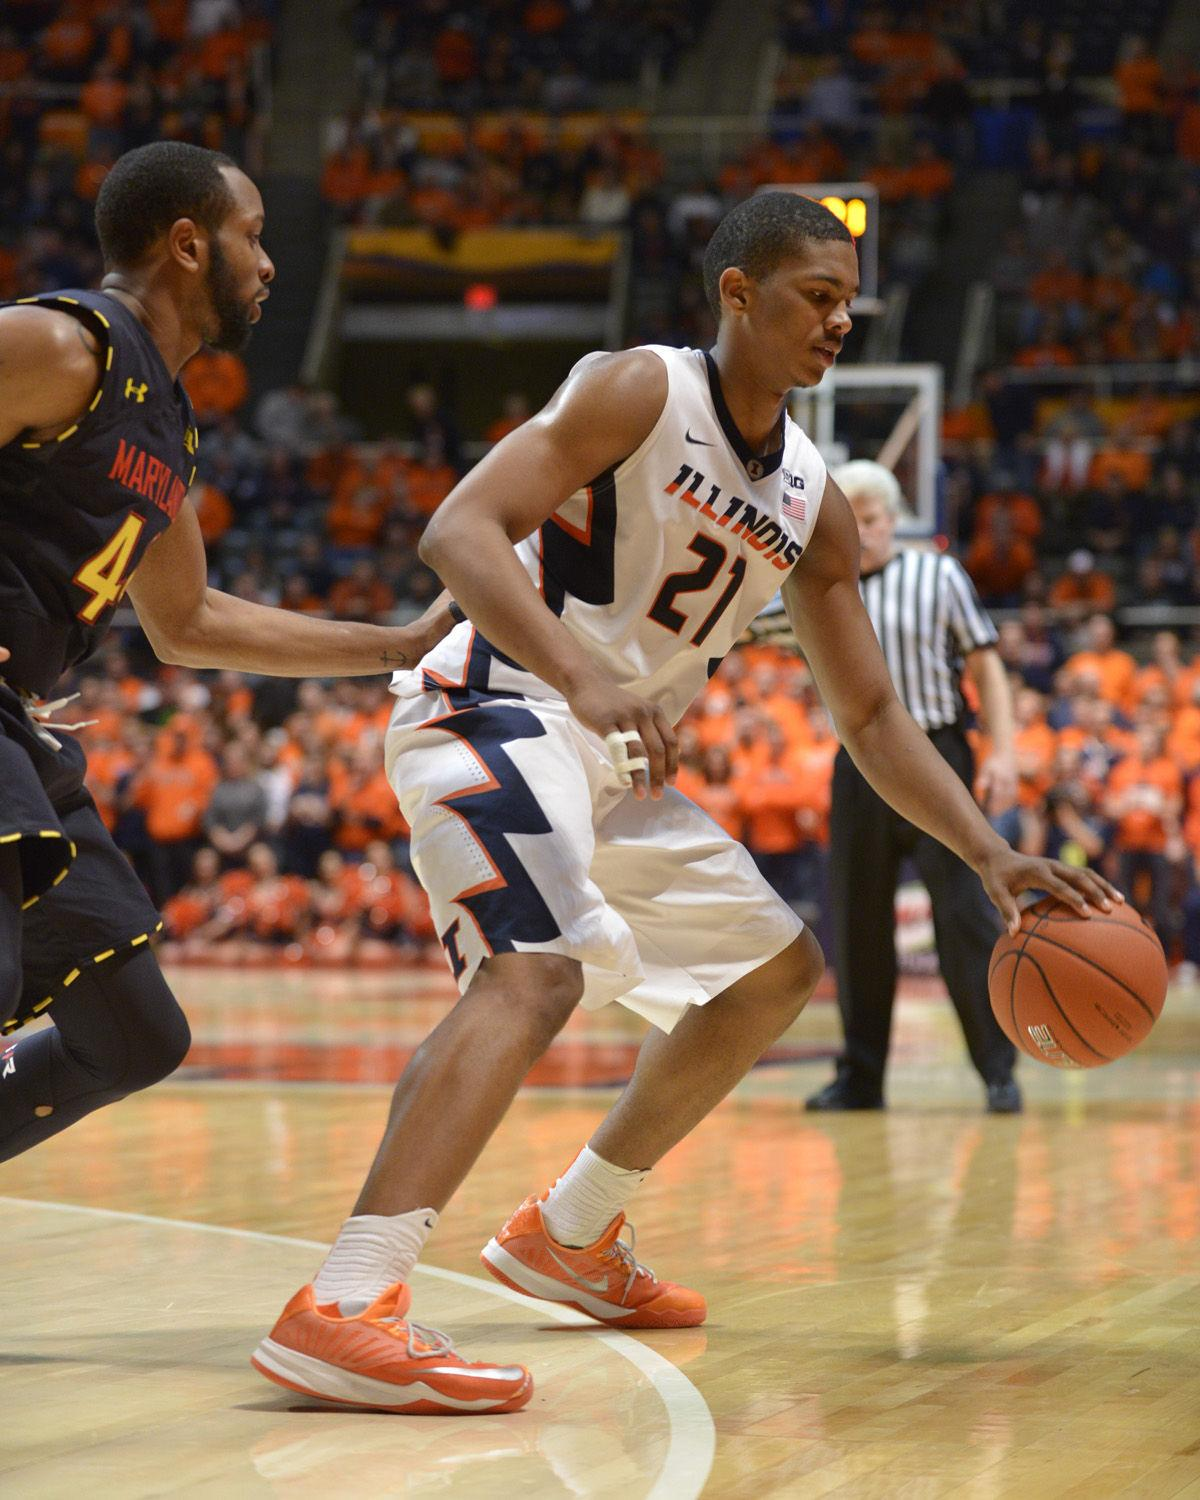 Illinois%27+Malcolm+Hill+keeps+control+of+the+ball+against+Maryland+at+State+Farm+Center+on+Wednesday.+The+Illini+won+64-57.+They%27ll+face+Nebraska+in+Lincoln+on+Sunday.%C2%A0